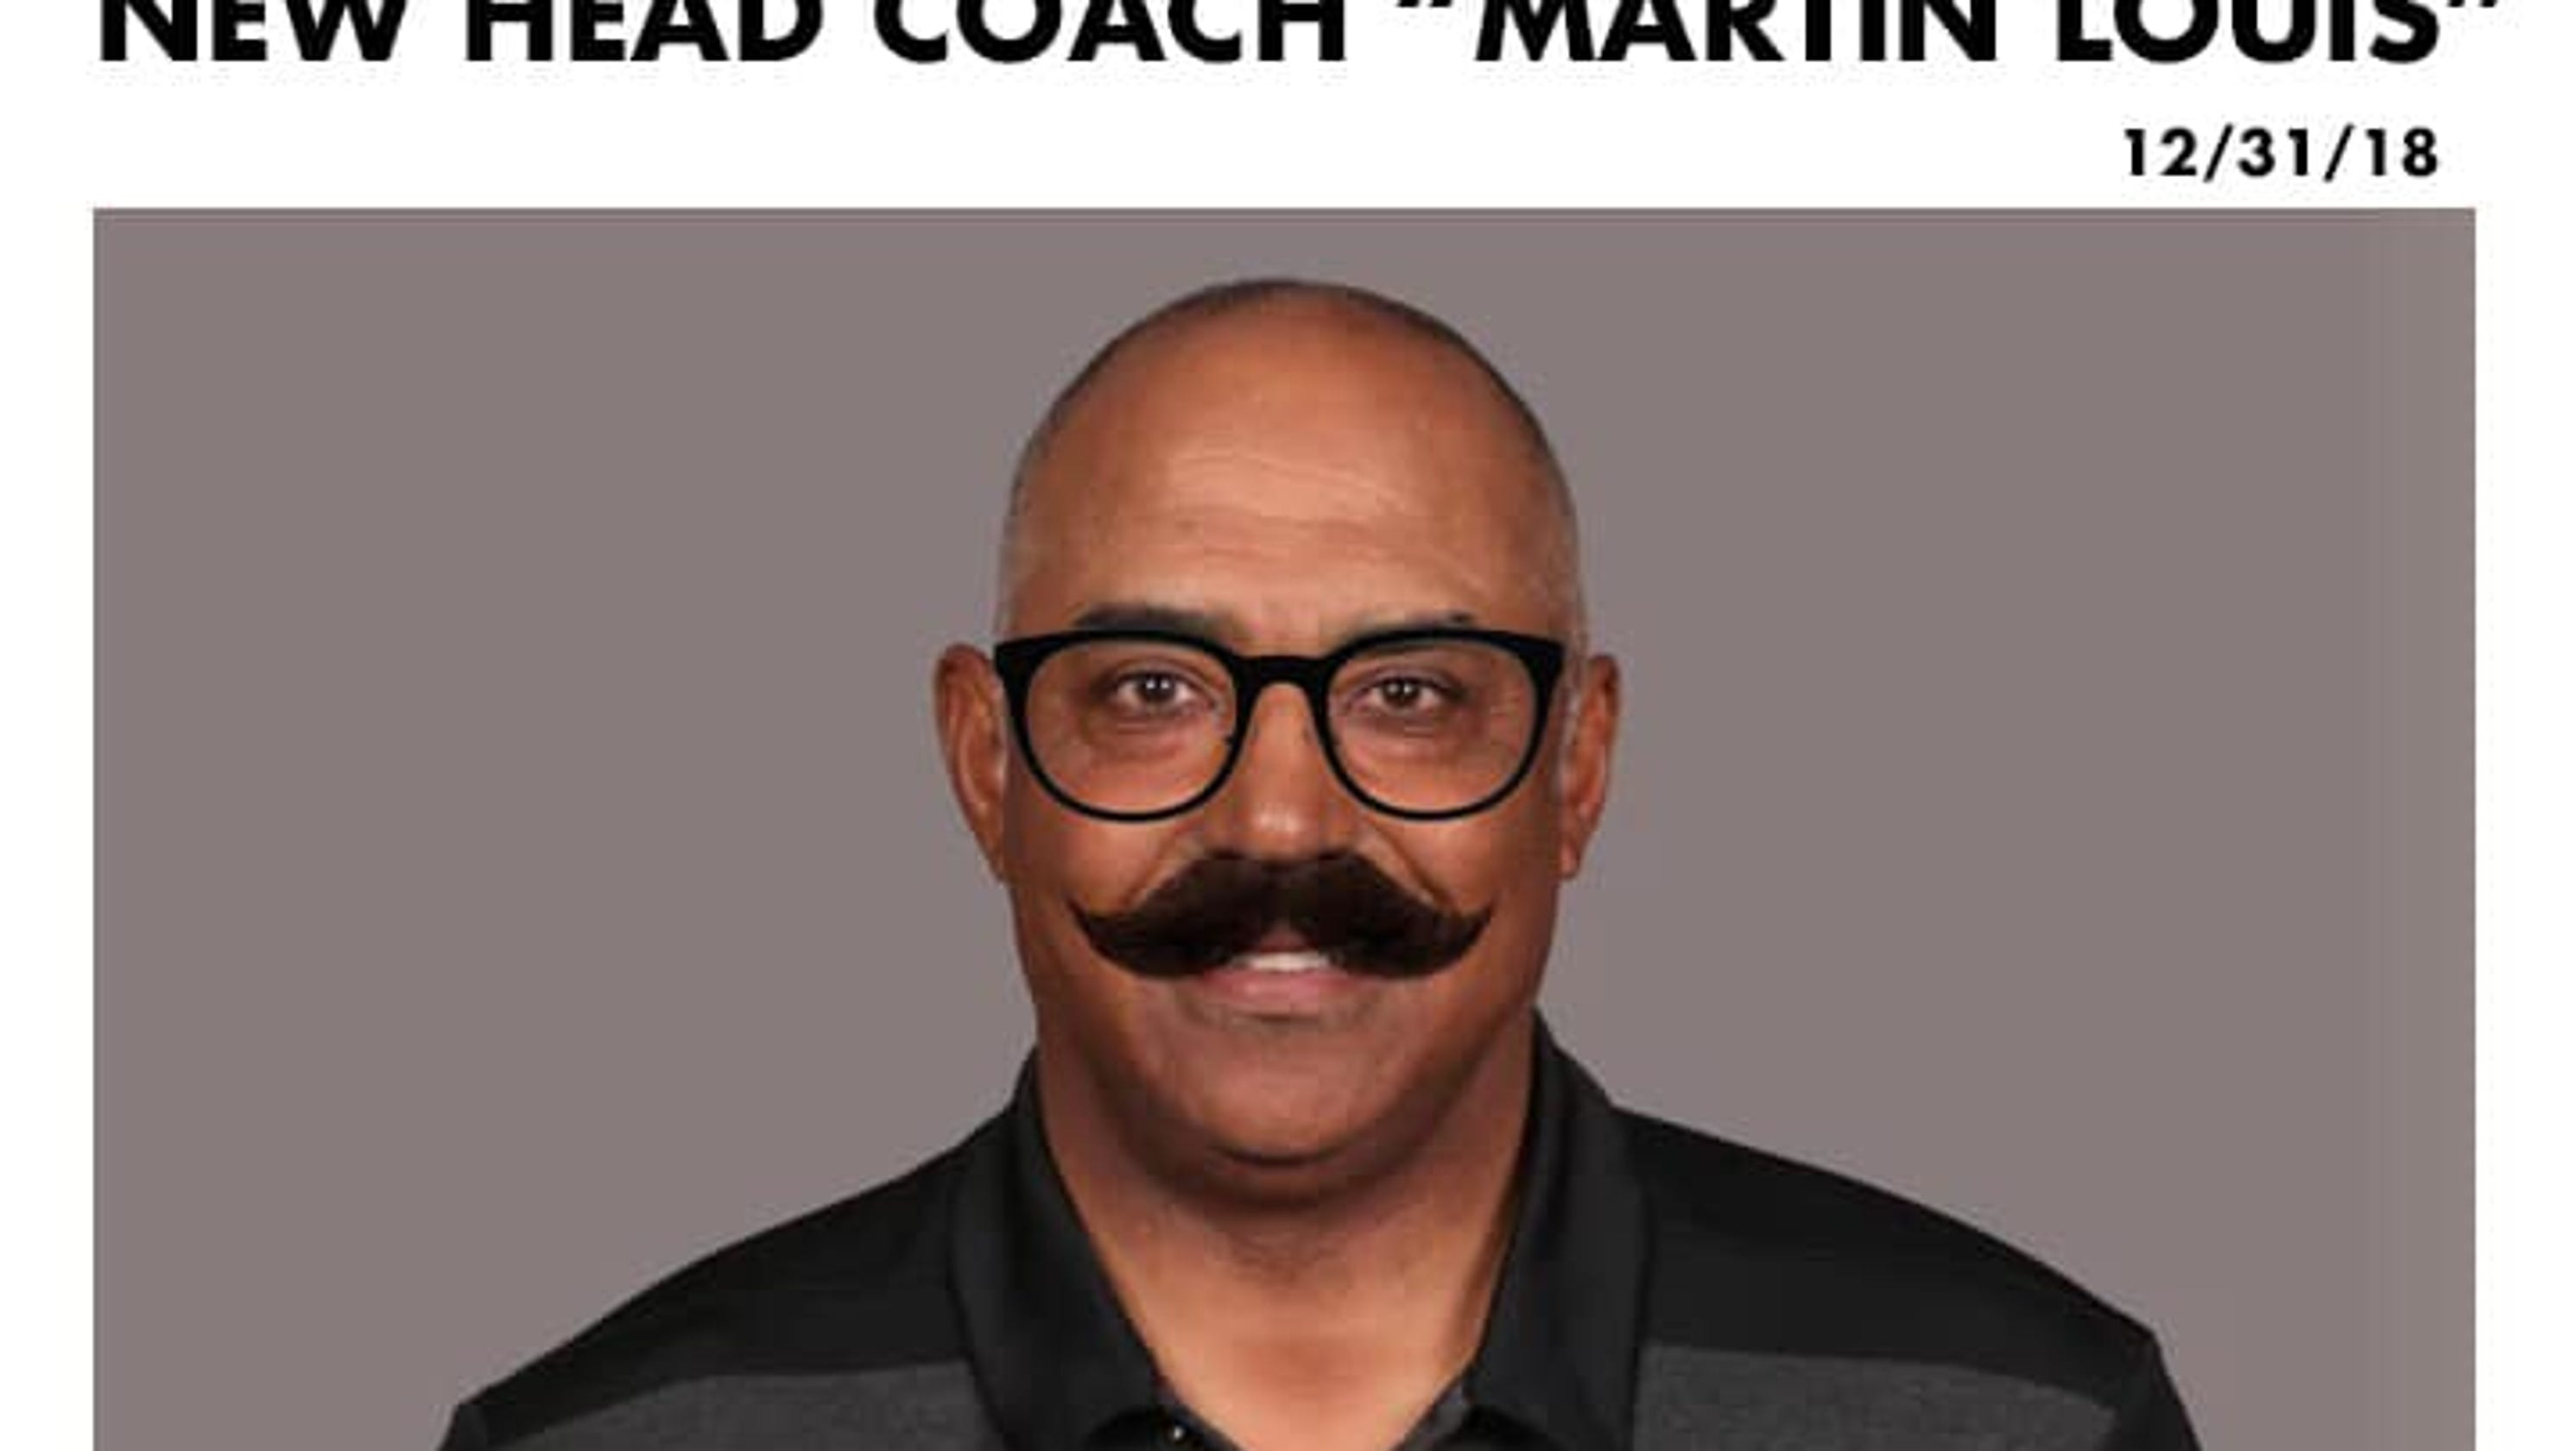 Martin Louis Meme From Cincy Shirts Goes Viral